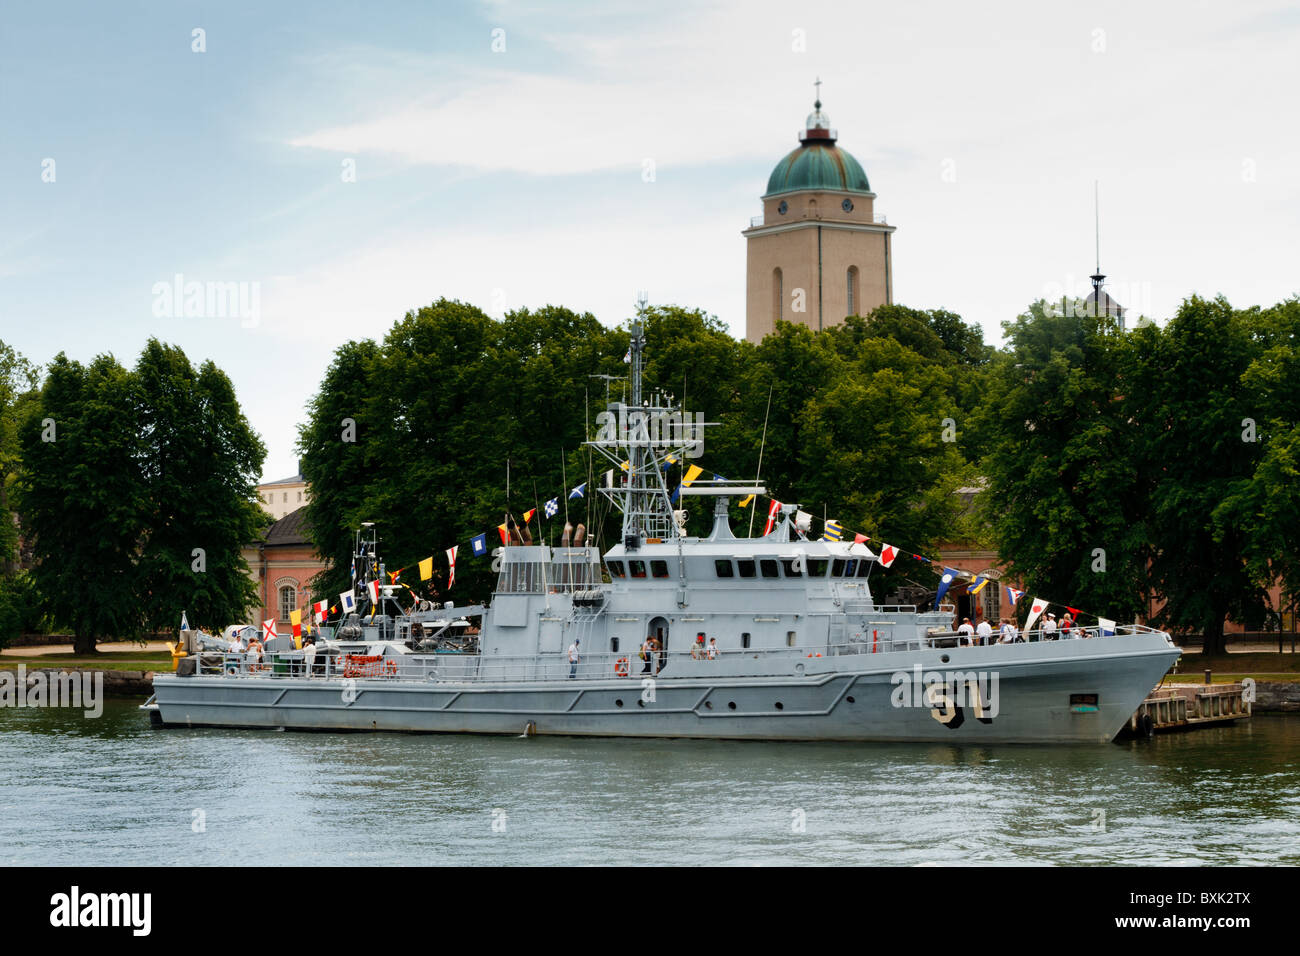 A patrol ship of the Finnish Navy, the FNS Kurki parading moored at the pier on Suomenlinna island off Helsinki - Stock Image